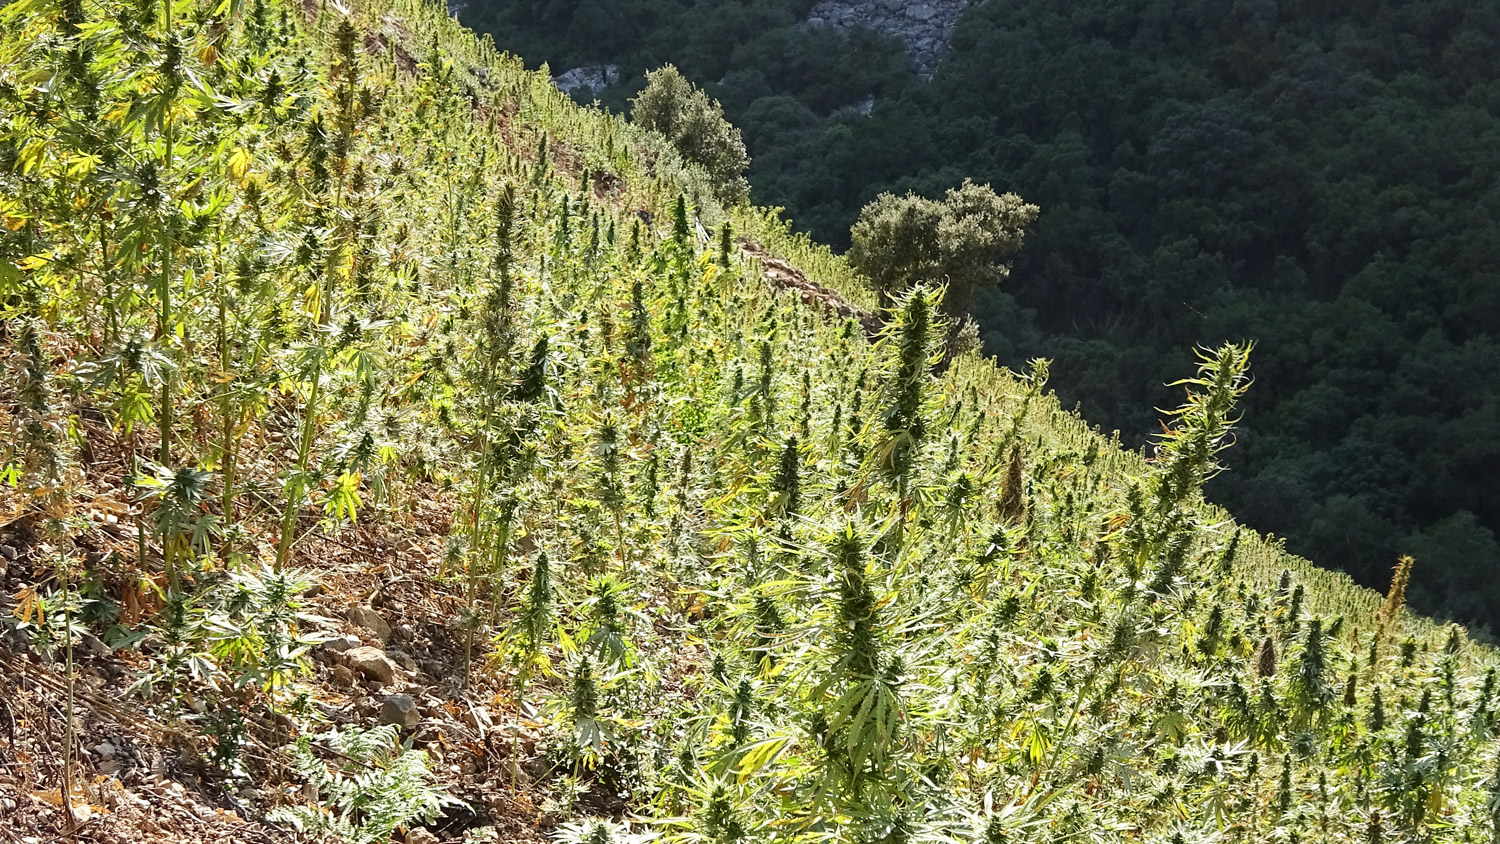 Marijuana is widely - and illegally - grown in the area around Chefchaouen. It creates environmental problems as farmers clear native plants from the steep slopes.